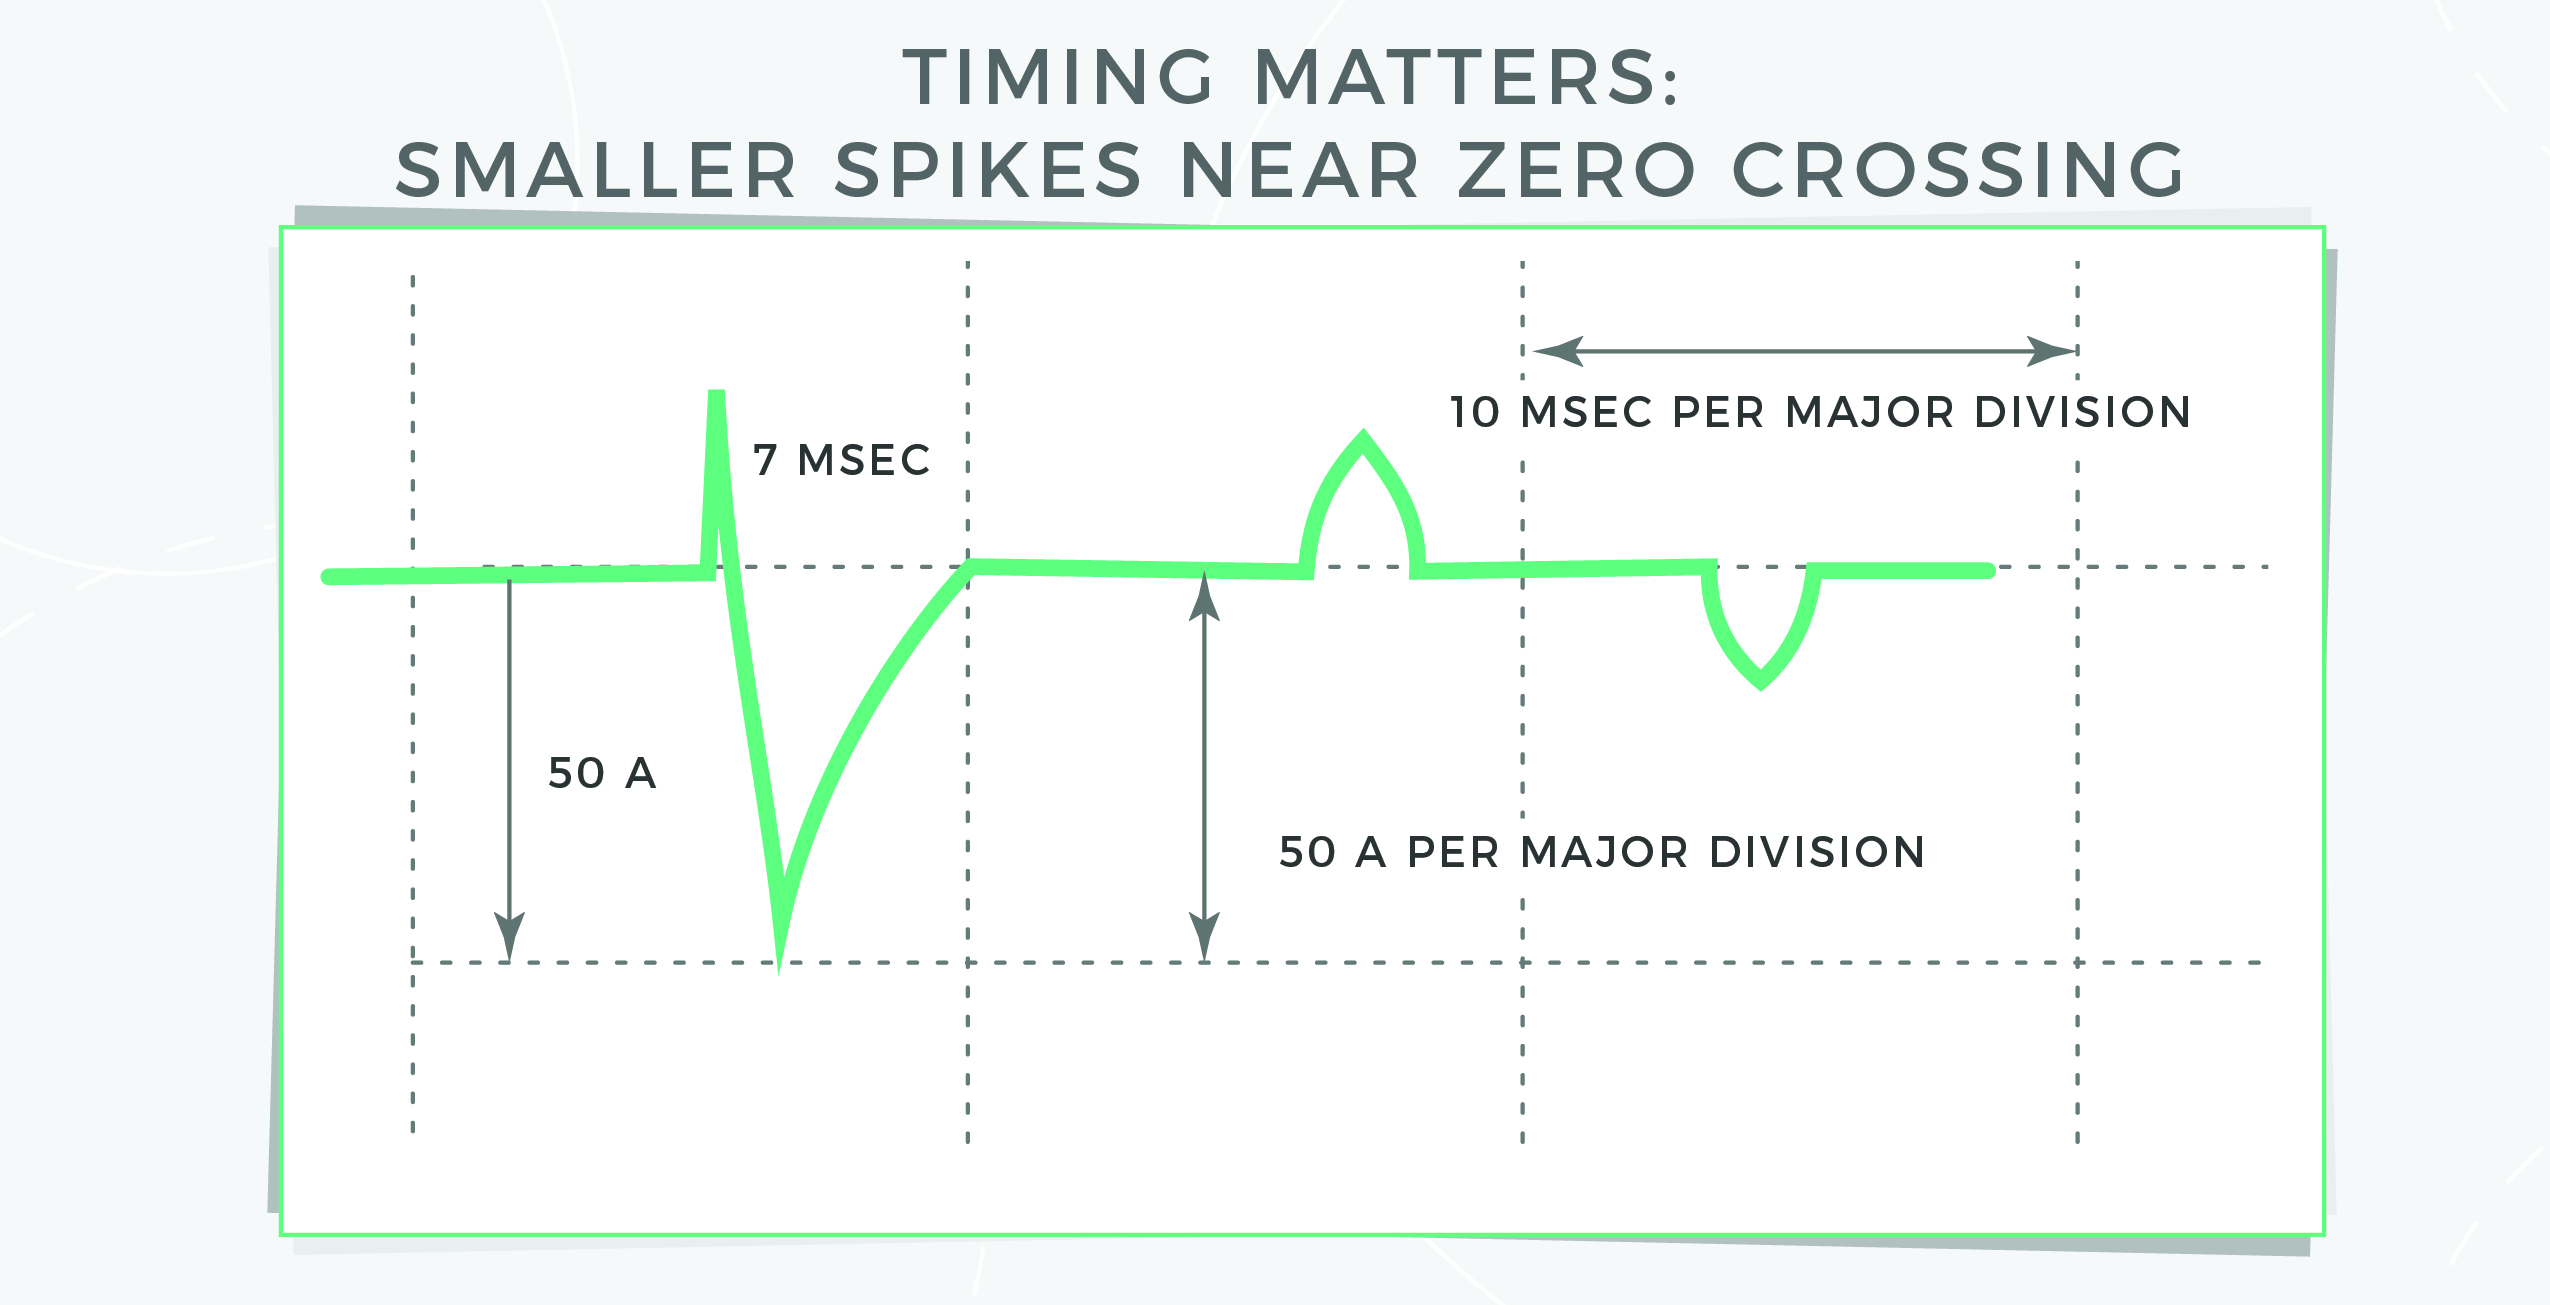 Graph of timing matters: smaller spikes near zero crossings